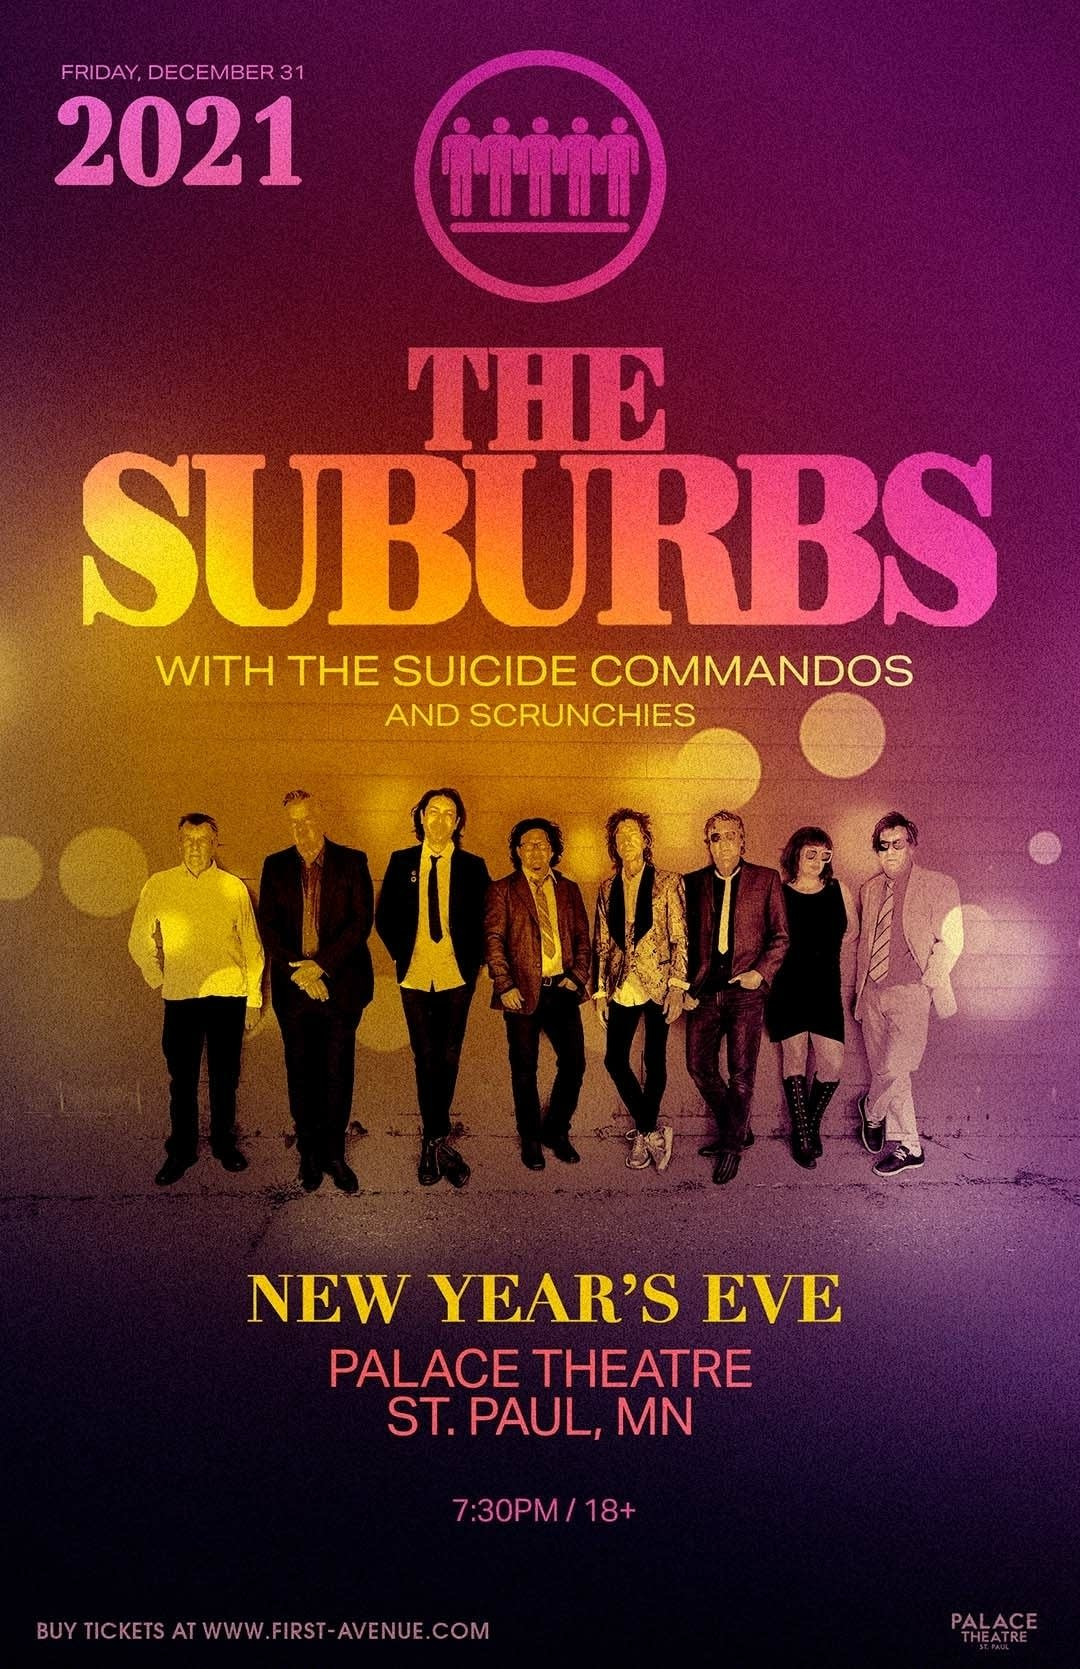 The Suburbs, Suicide Commandos and Scrunchies NYE show